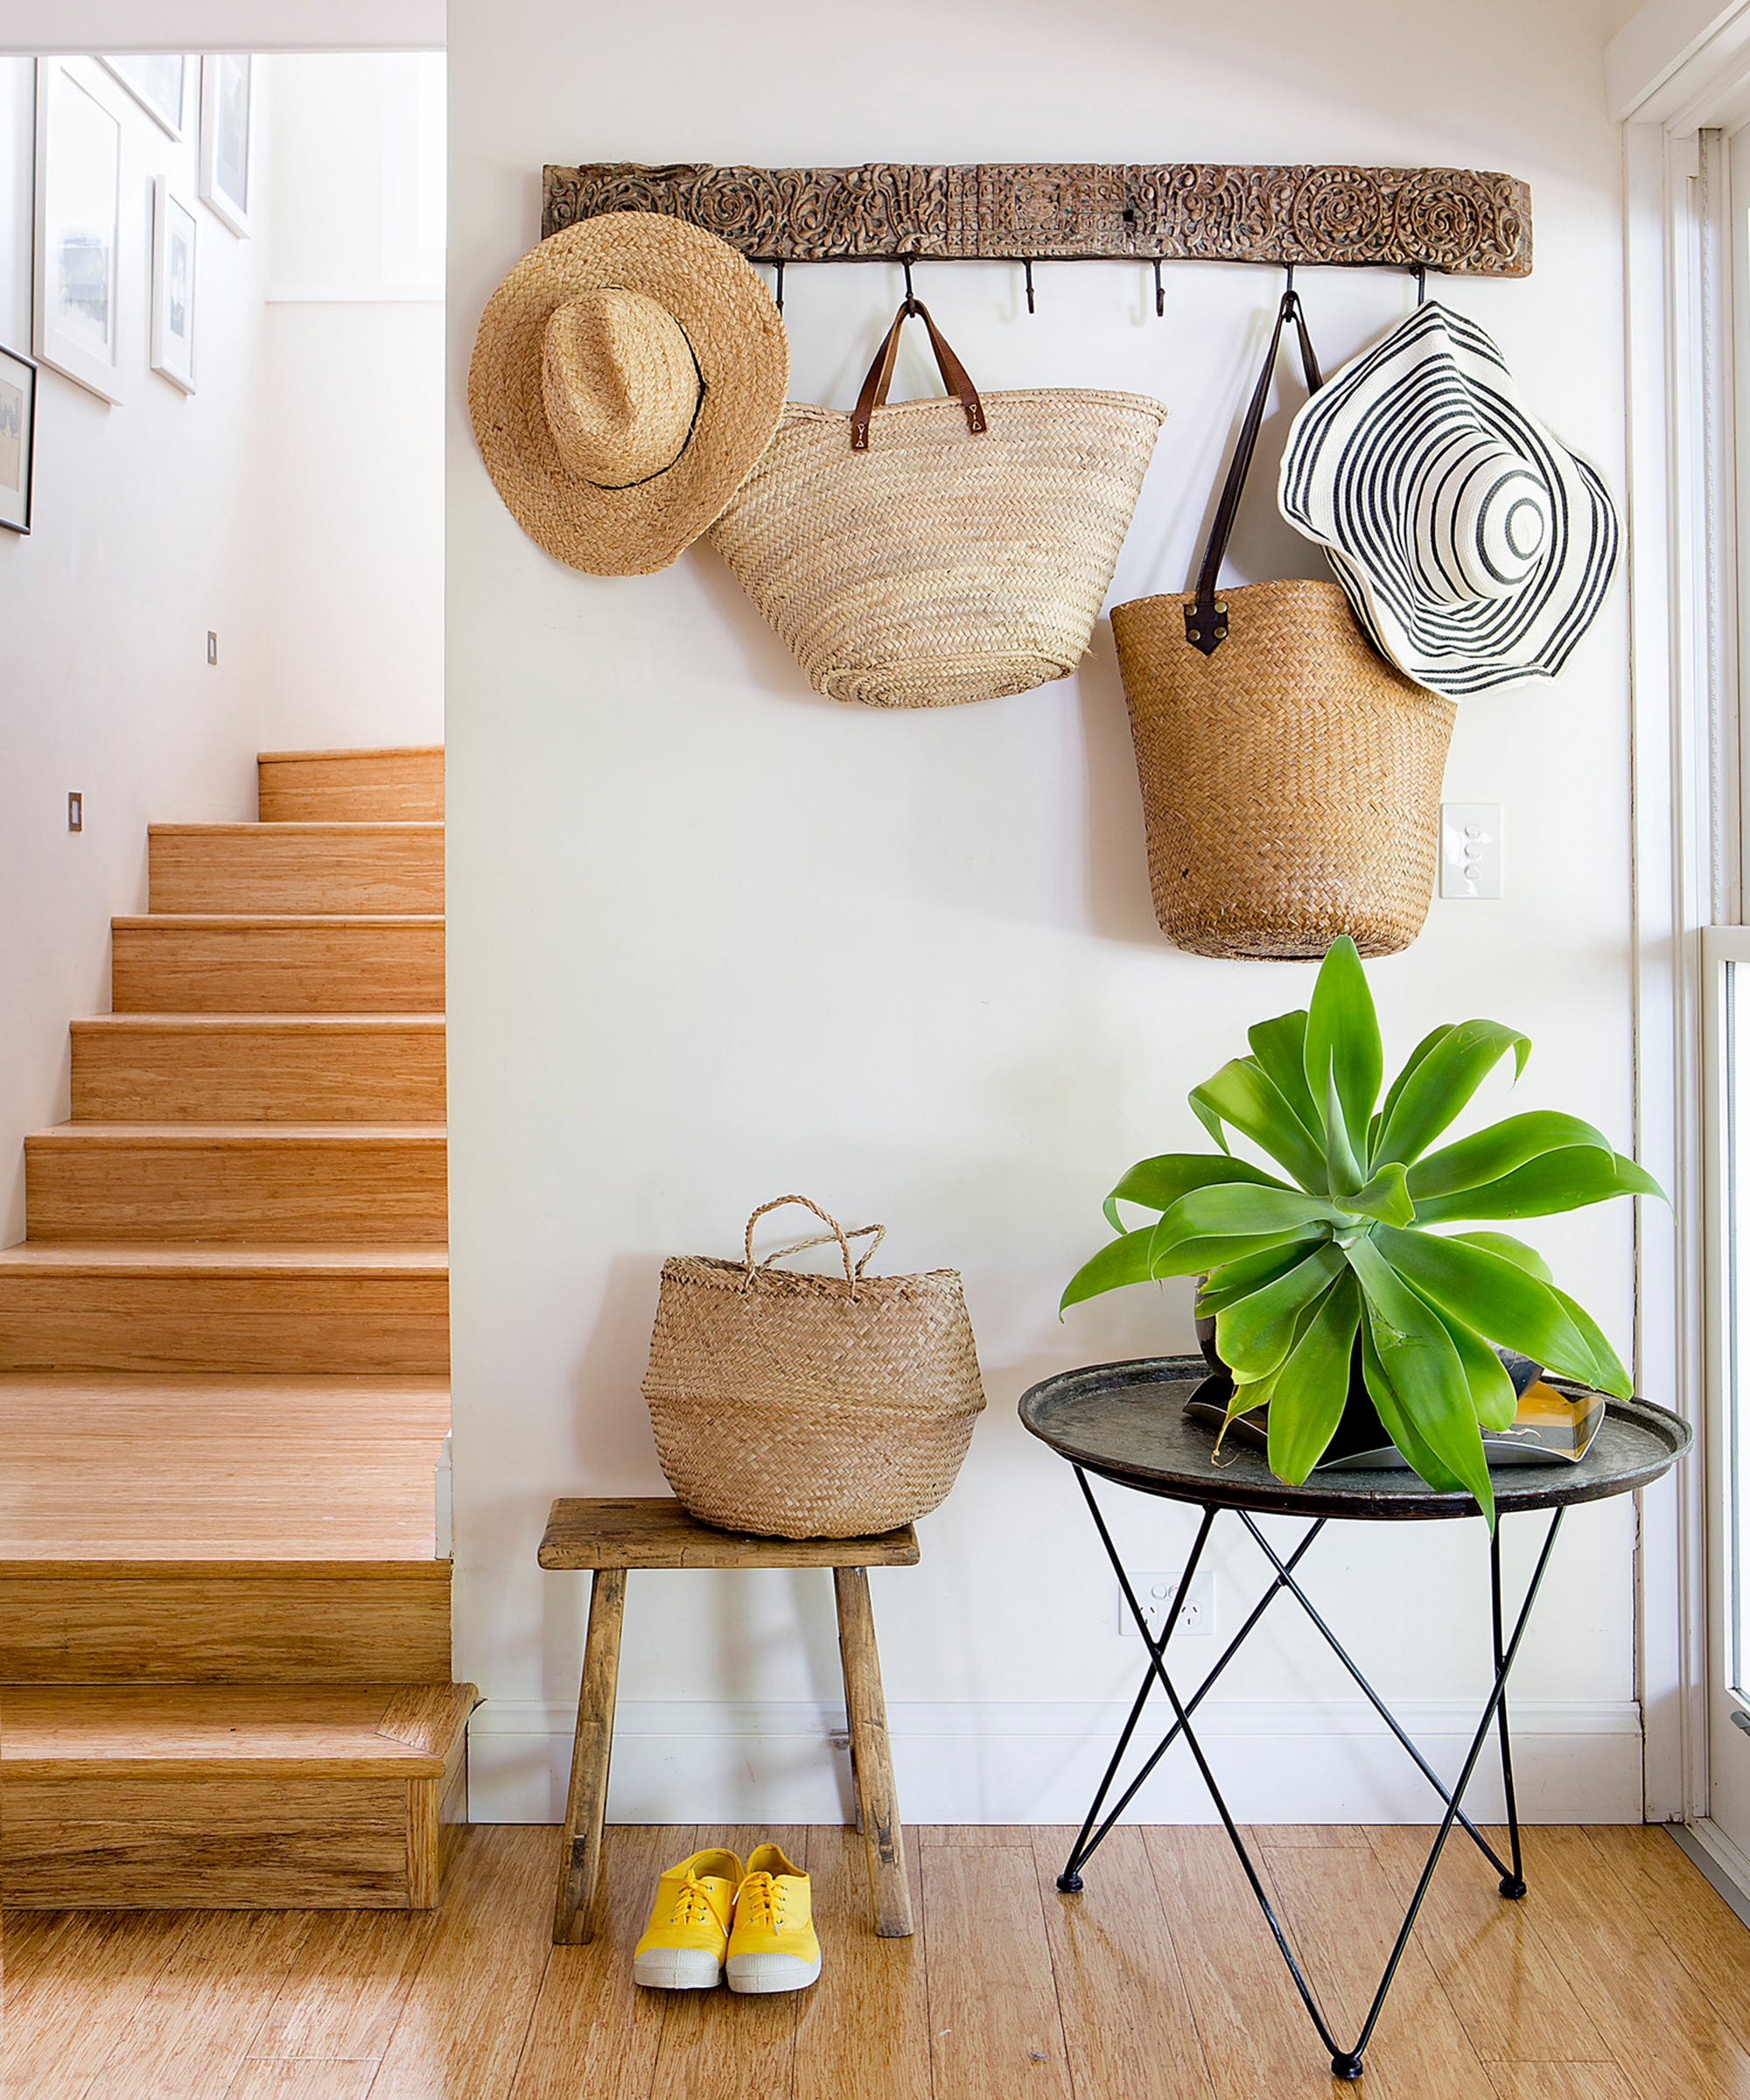 How to make your home feel like summer